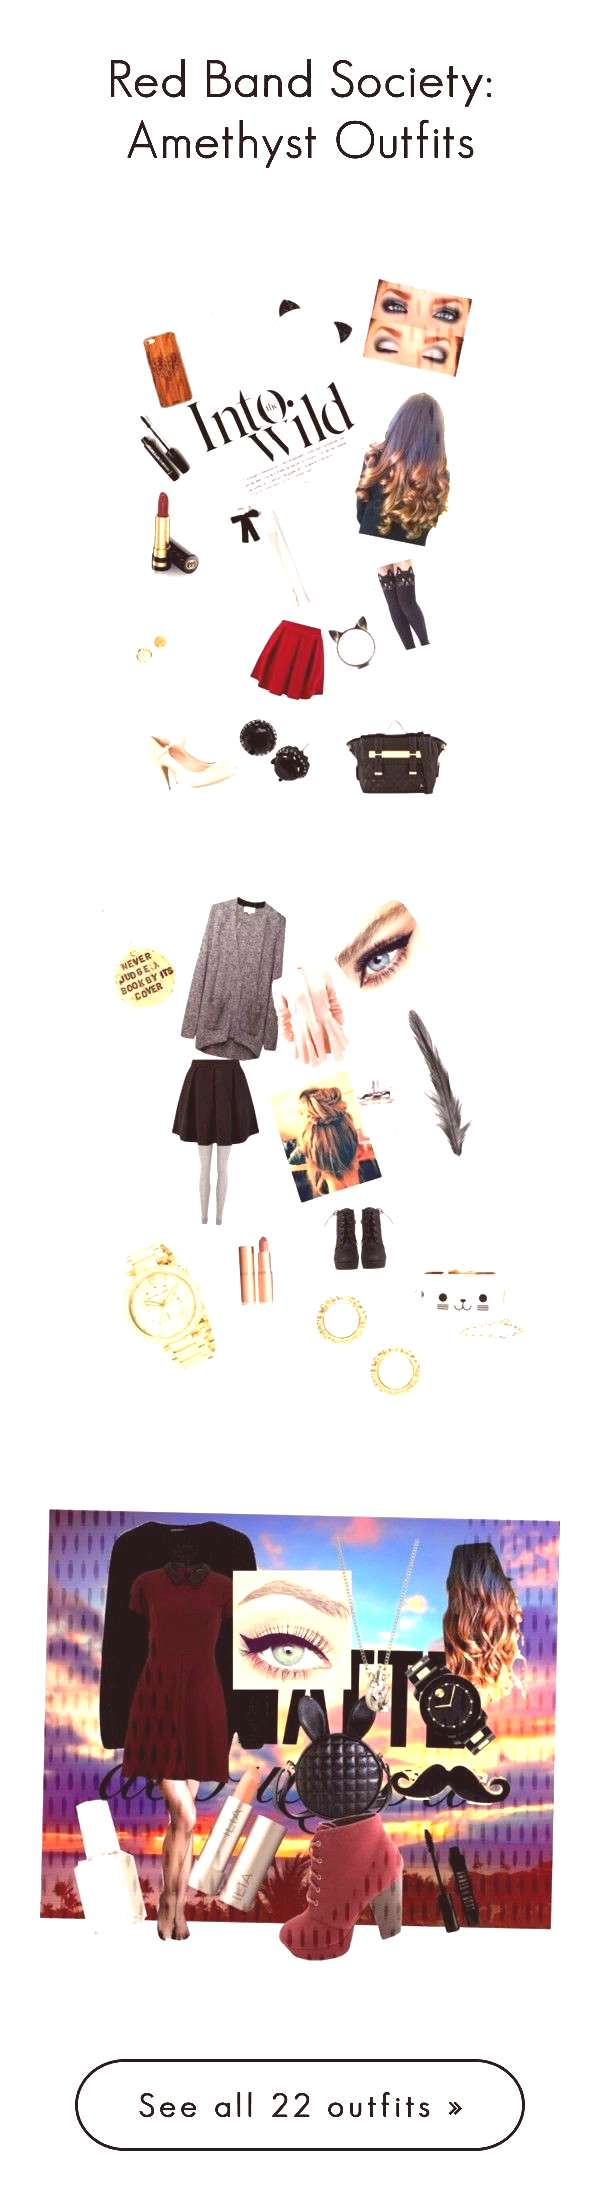 quotRed Band Society Amethyst Outfitsquot by littlebookowl16 on PolyvorequotRed Band Society Amethyst Outf